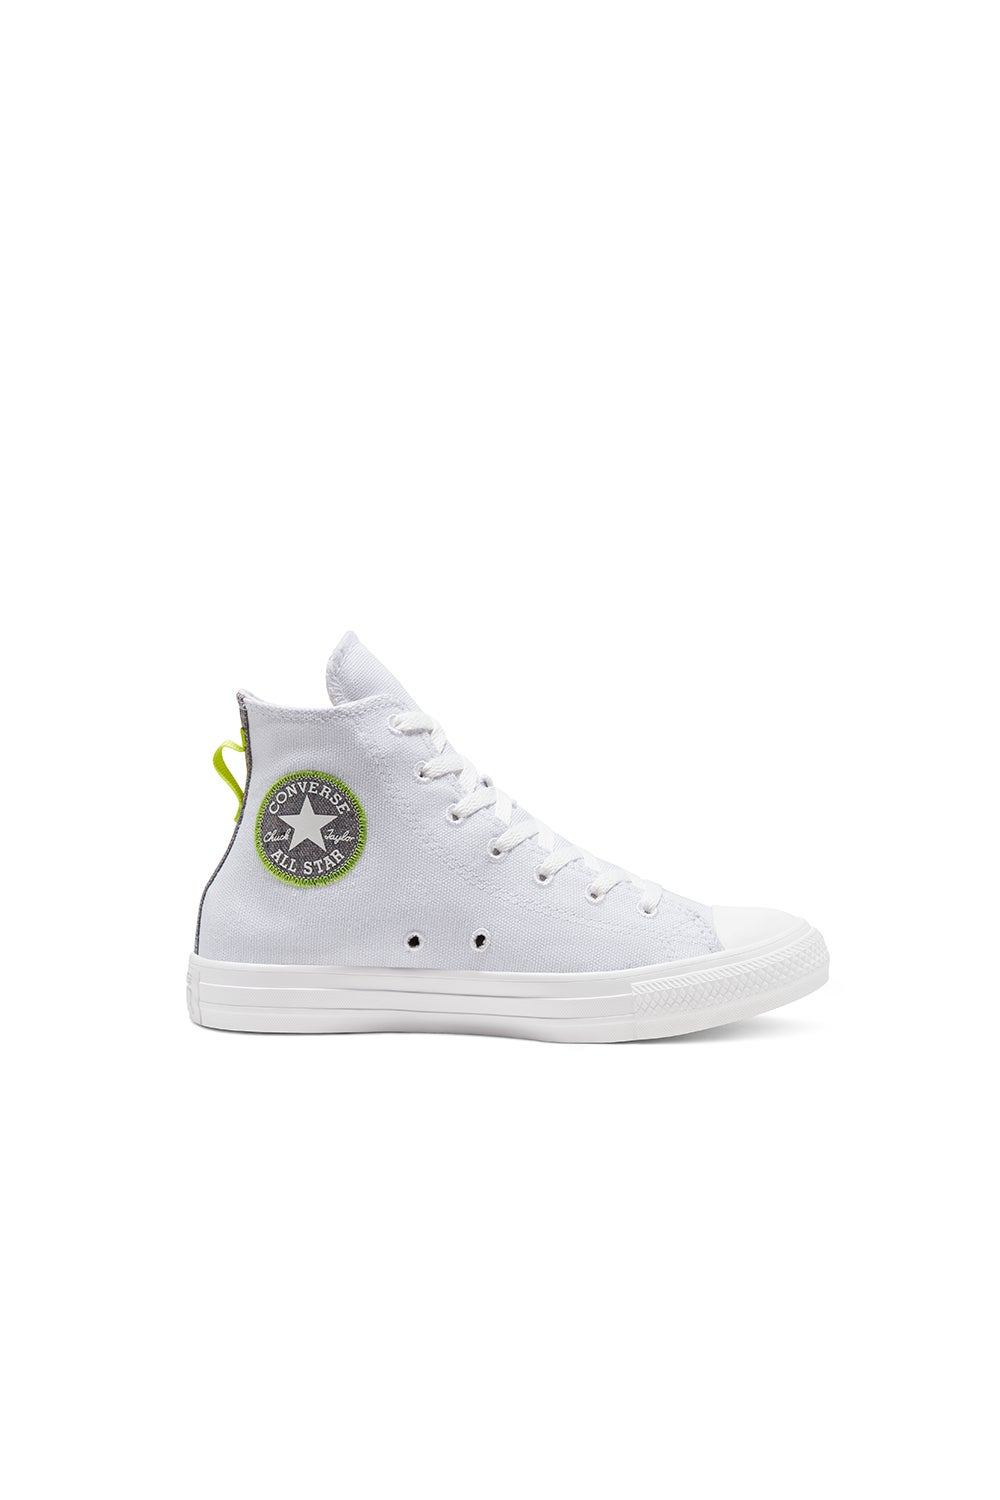 Converse Chuck Taylor All Star Renew Cotton High Top White